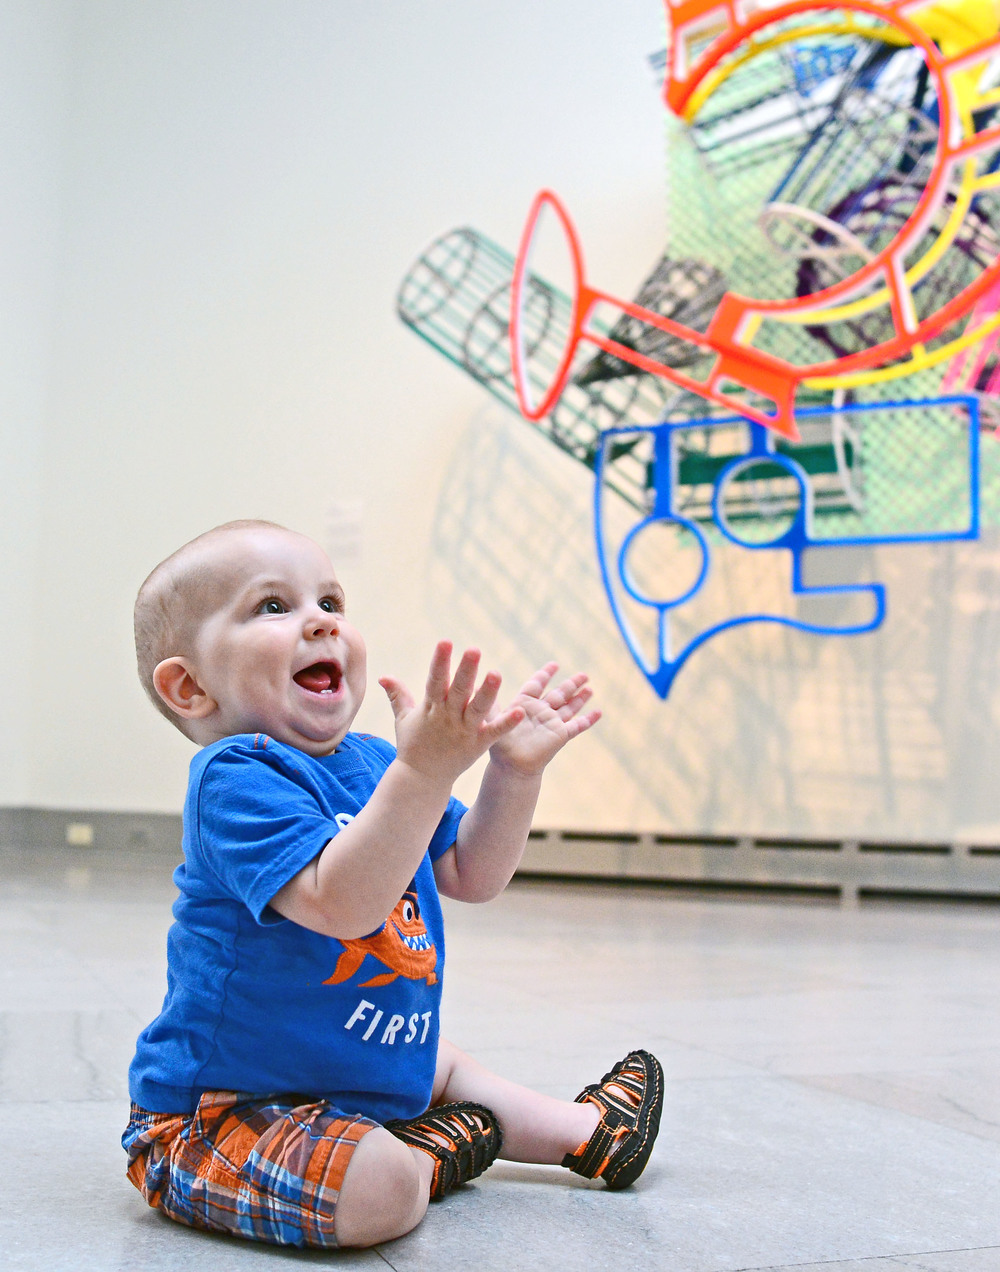 A small child sits on the floor, his two teeth exposed in a gleeful grin as he reaches up toward a colorful sculpture